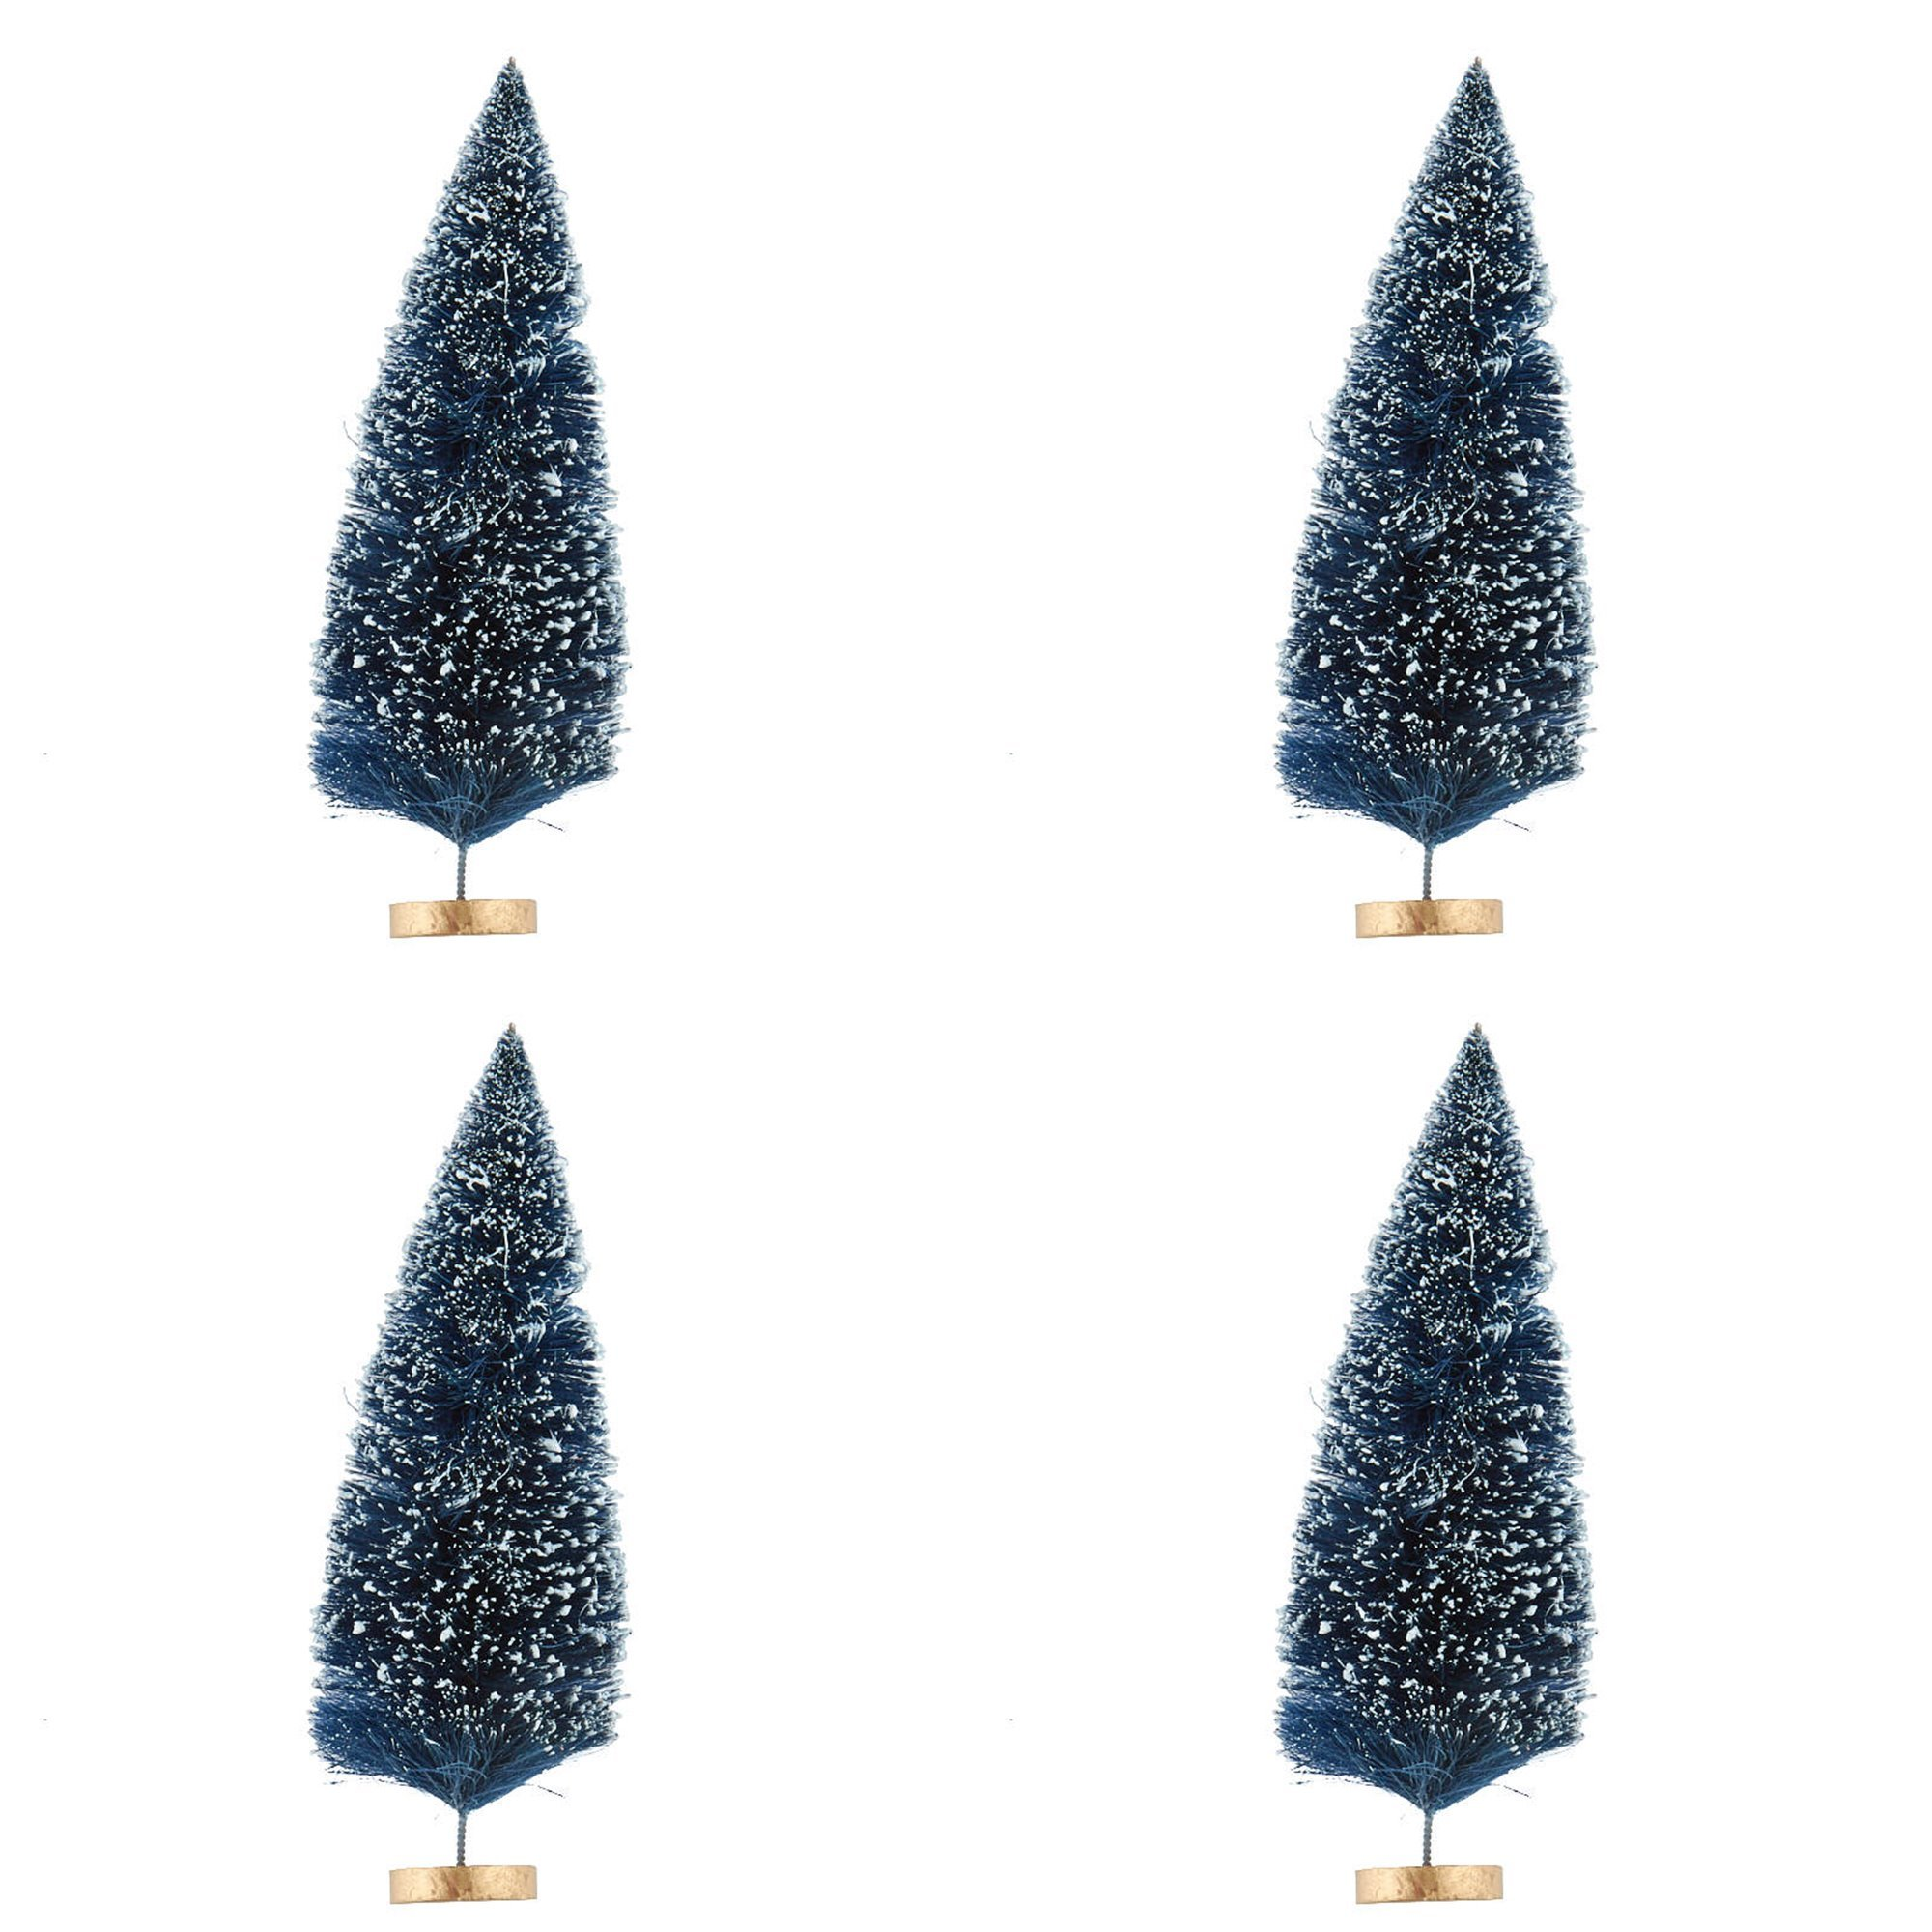 9 Inch Miniature Frosted Navy Blue Bottle Brush Trees on Wood Bases - 4 Trees